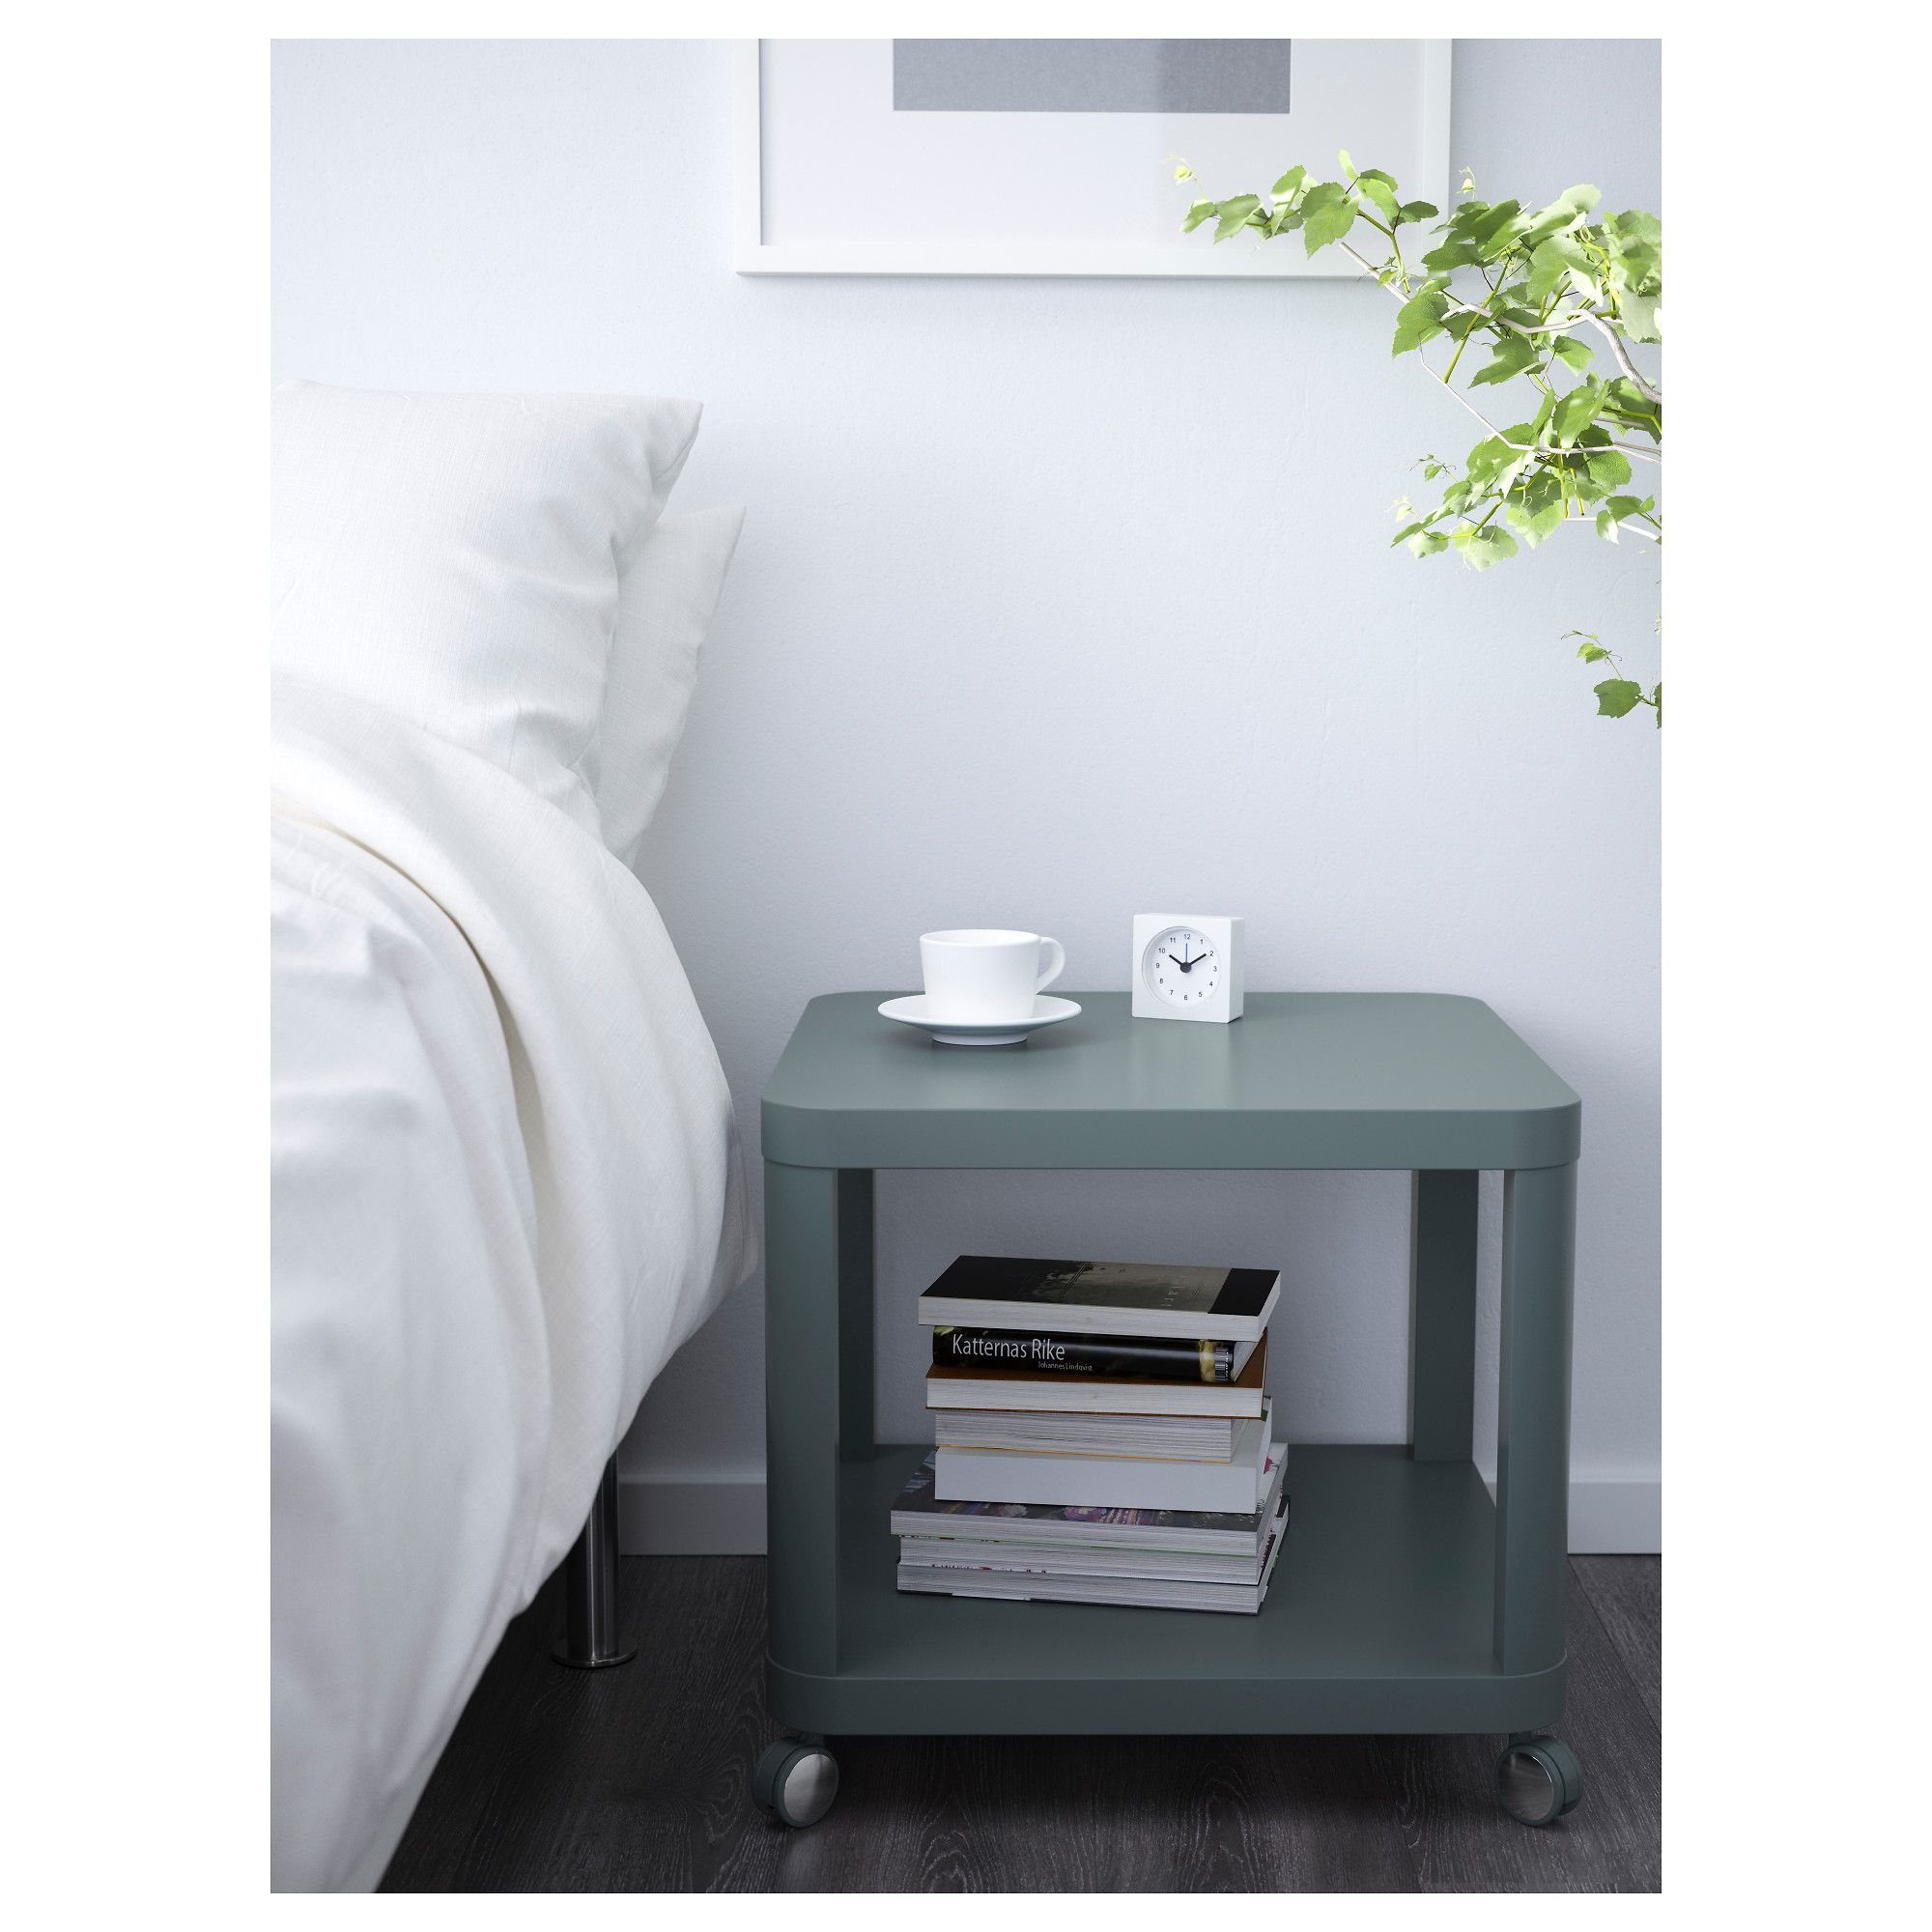 Ikea Tingby Side Table On Casters Turquoise Ikea Side Table Ikea Table